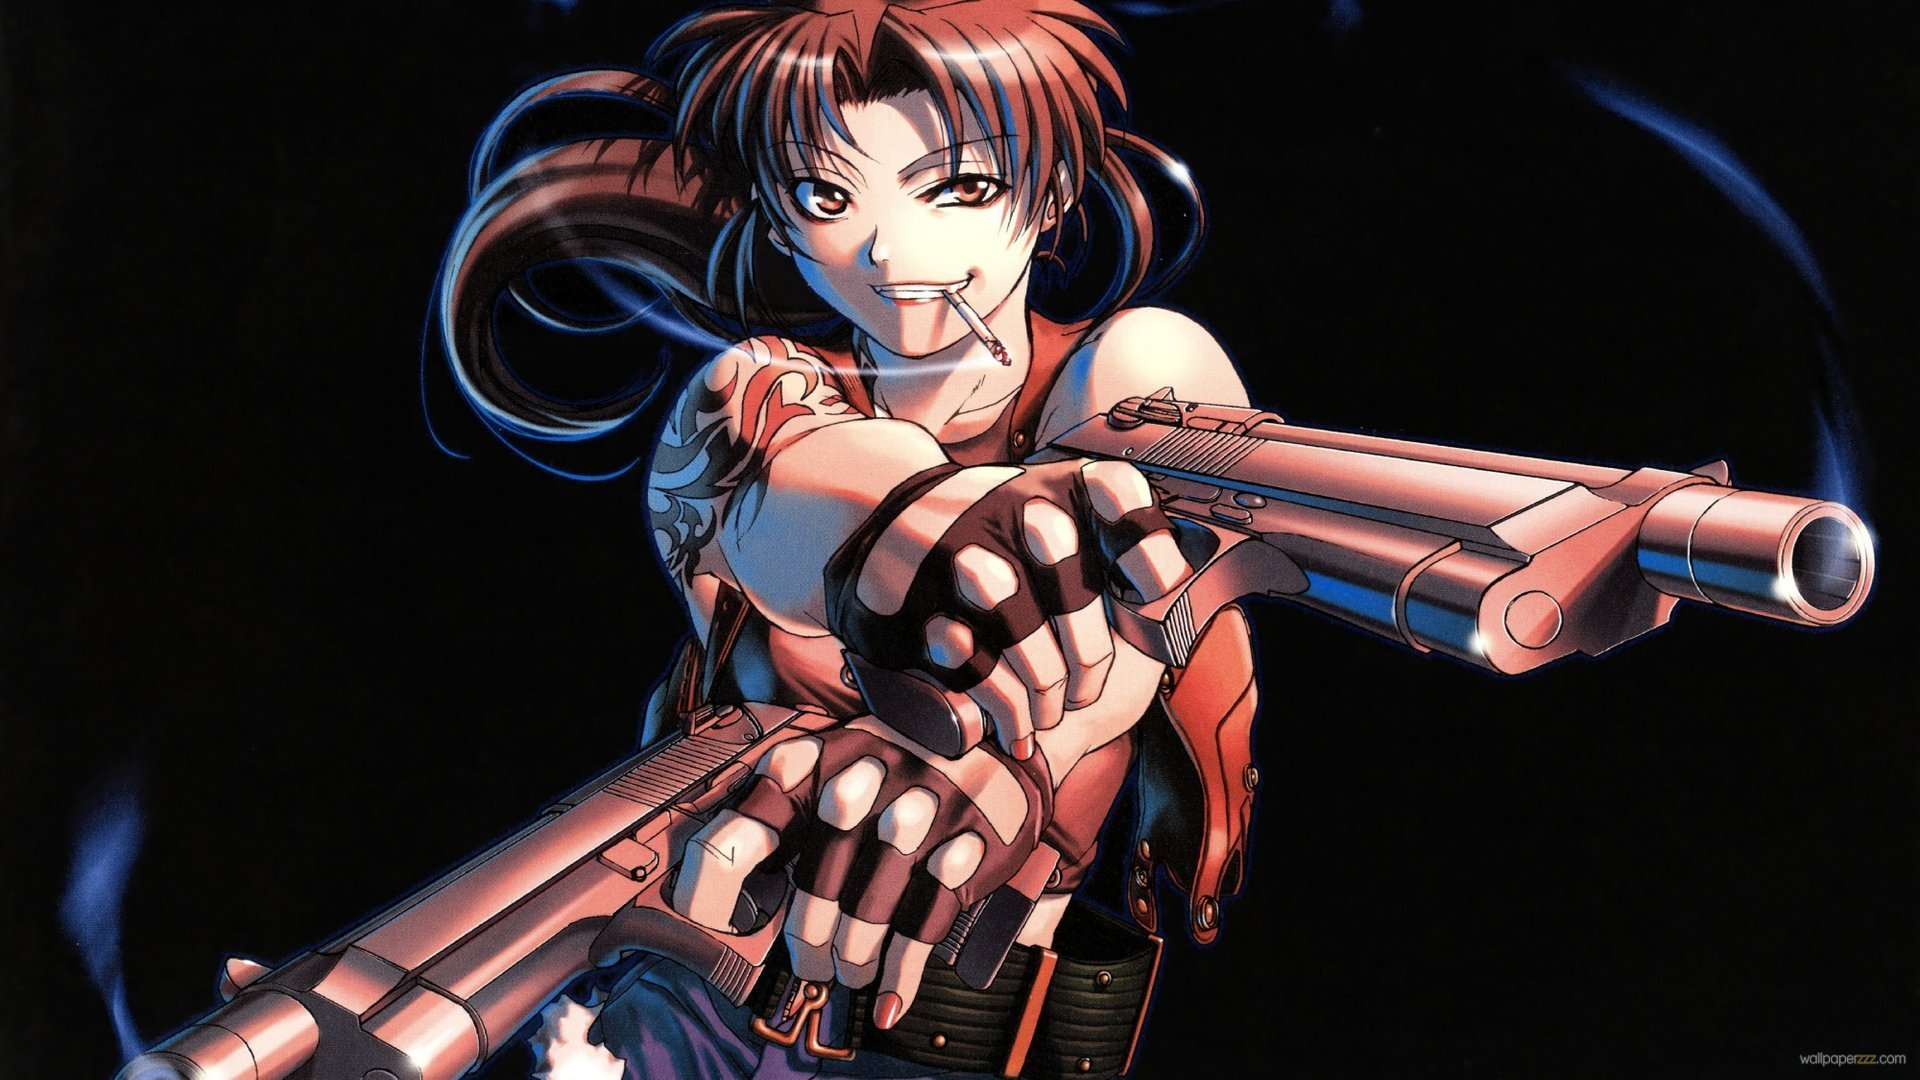 Download Black Lagoon Guns Hd Anime Wallpaper Full HD Wallpapers 1920x1080